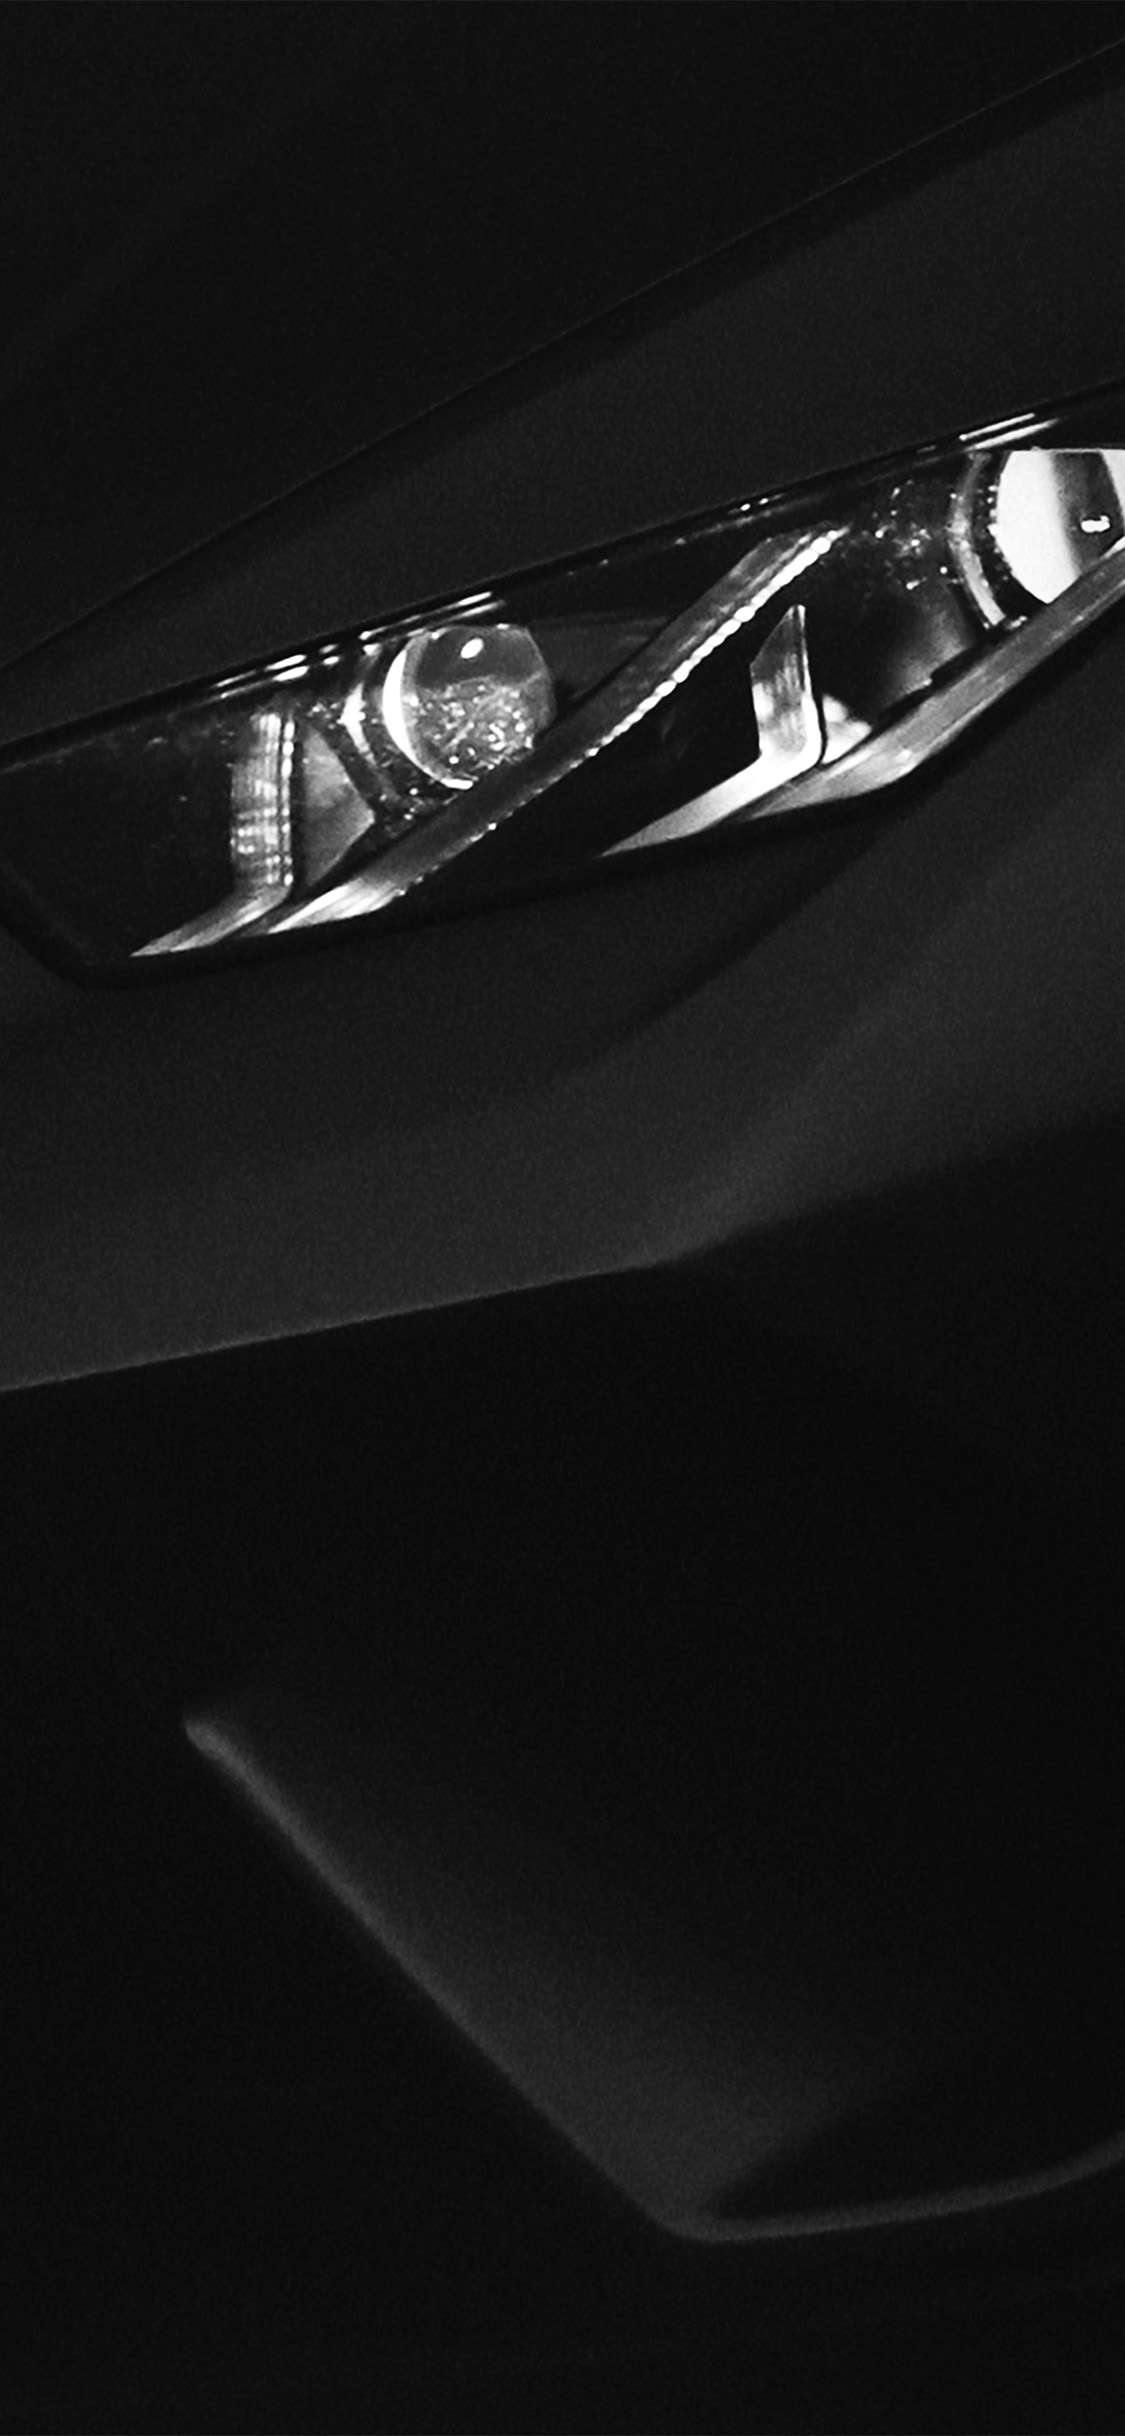 iPhonexpapers.com-Apple-iPhone-wallpaper-bf17-car-lamborghini-light-dark-minimal-simple-art-bw